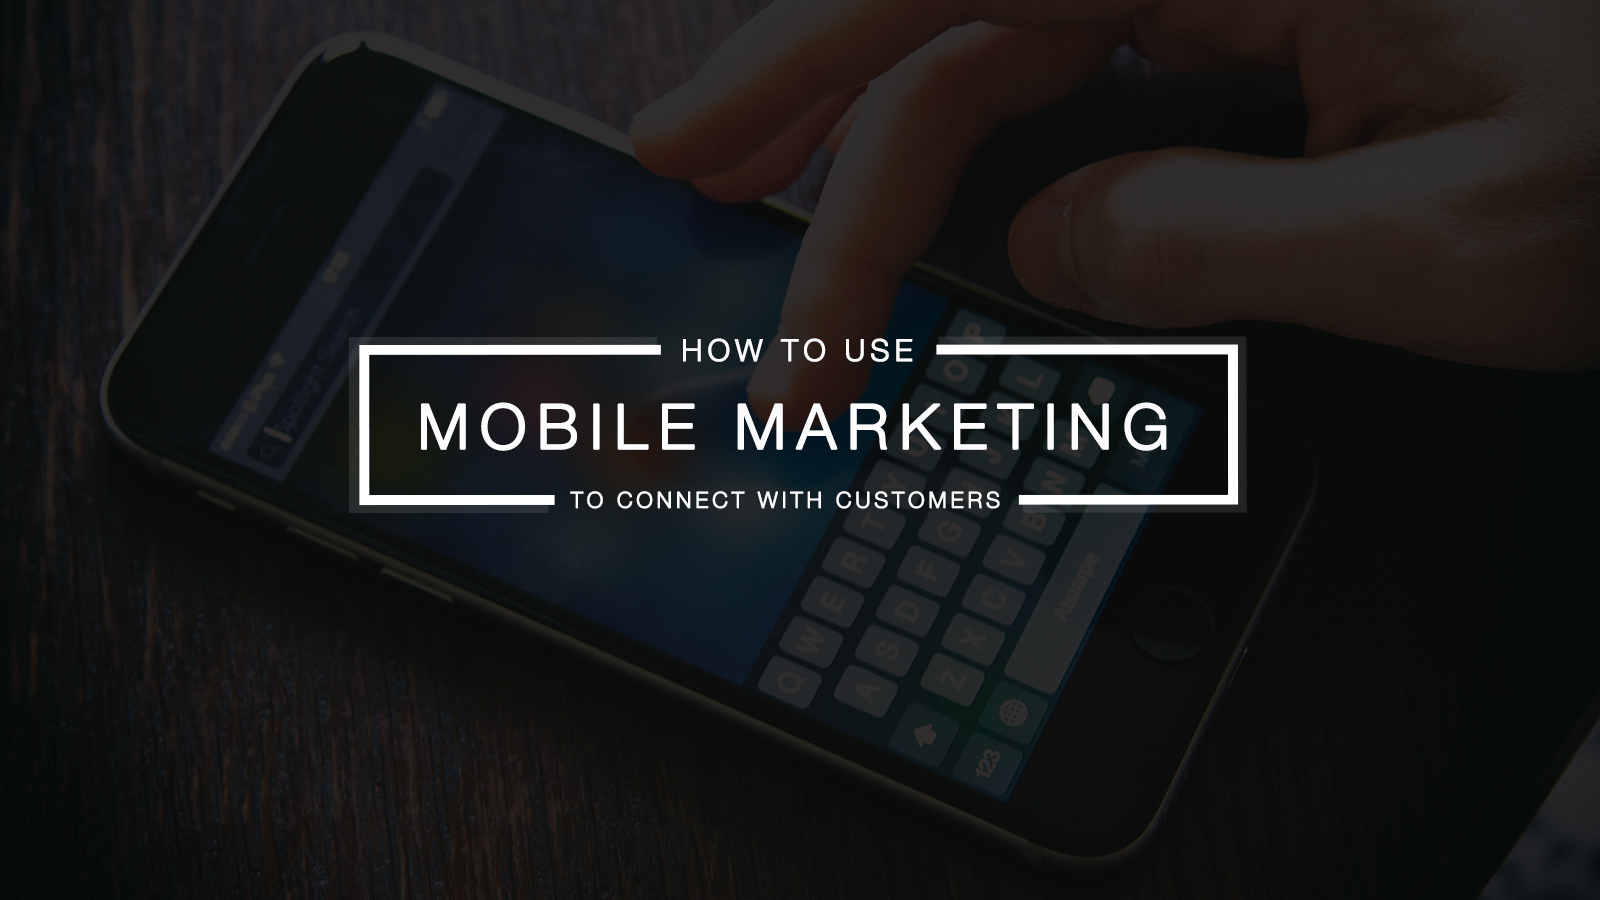 Mobile-Marketing-to-Achieve-Direct-Connection-oye